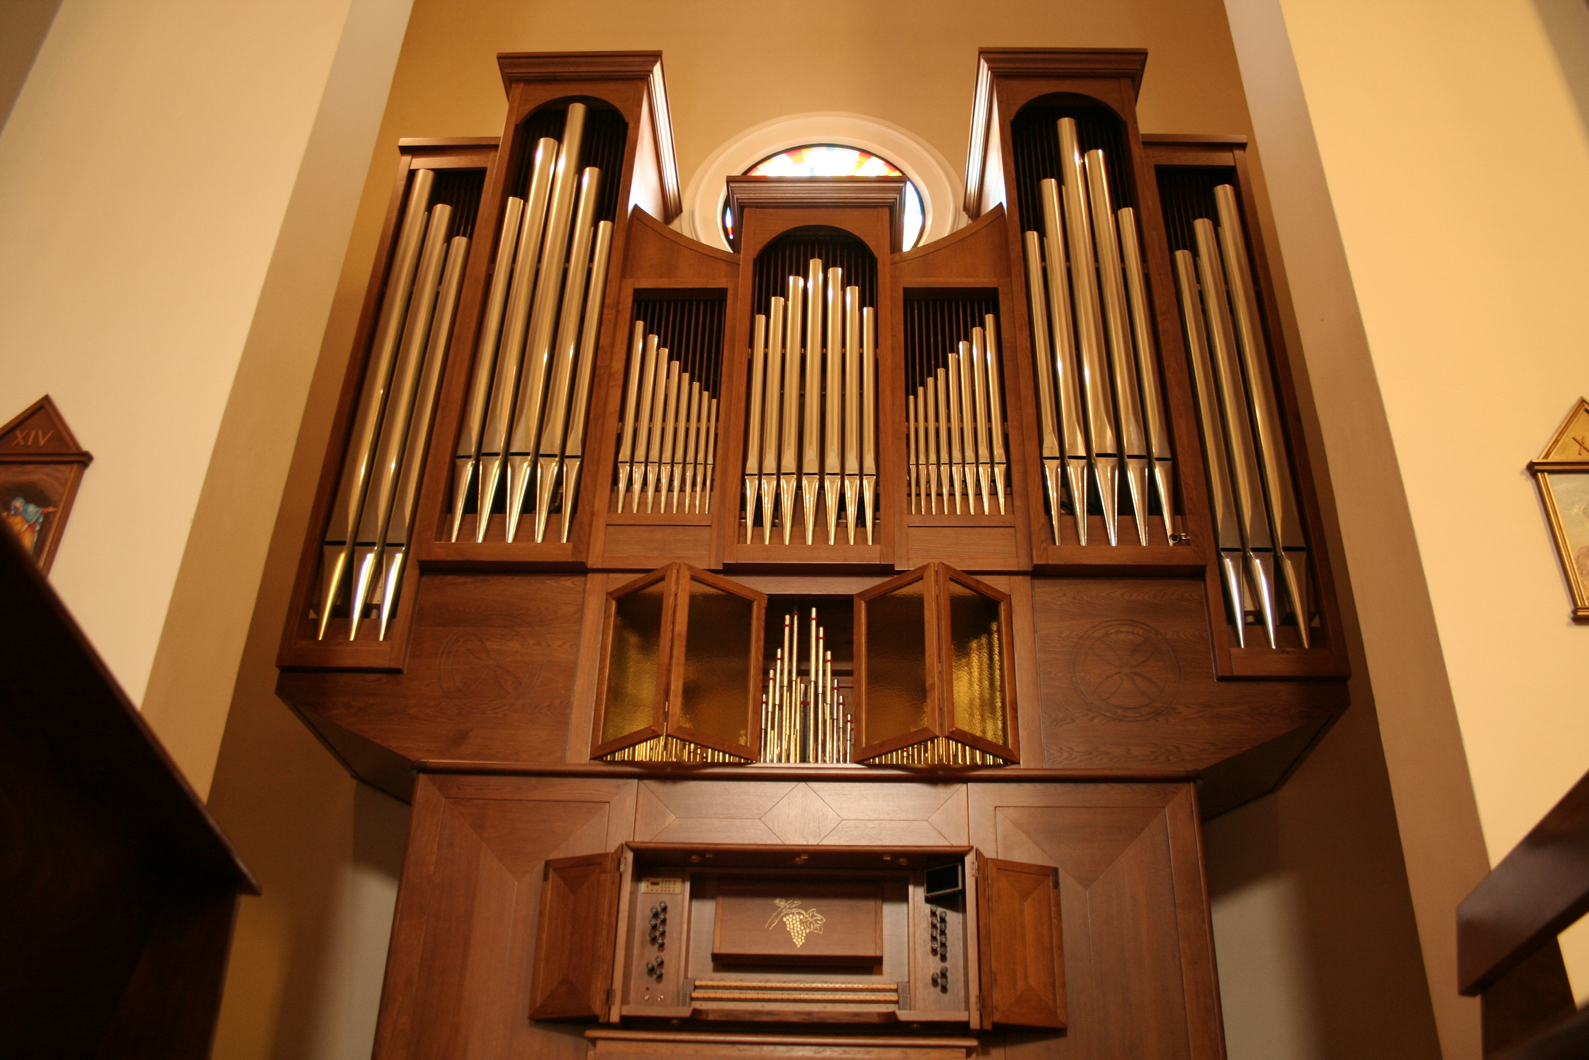 Organ builders from 1957